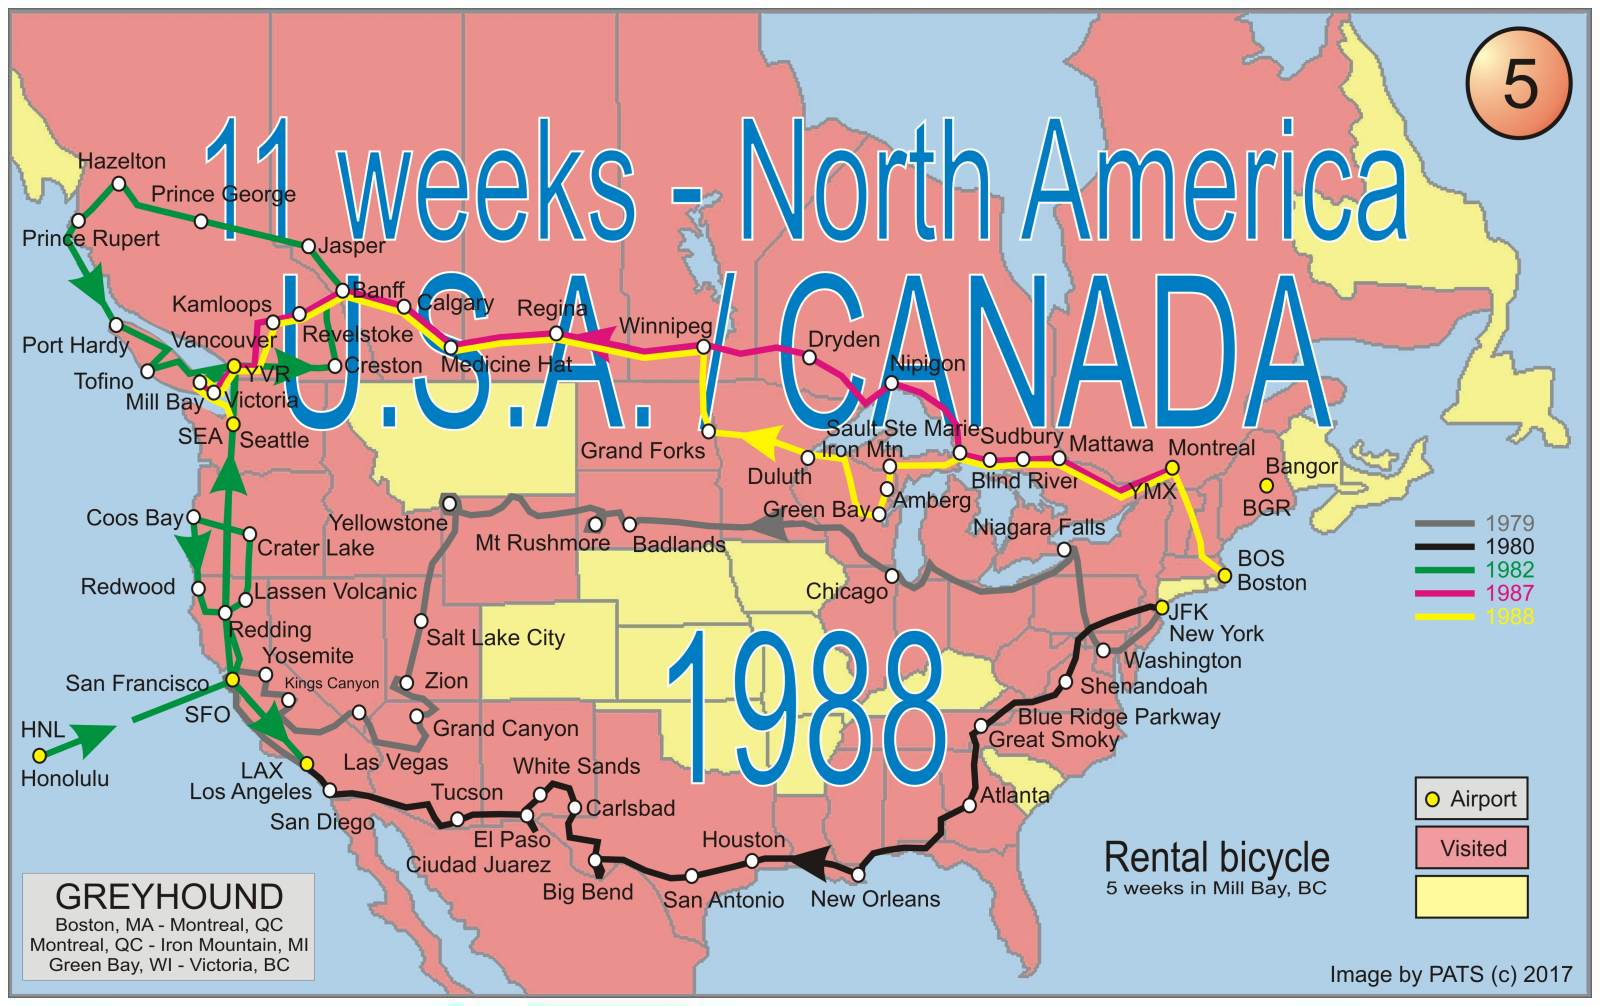 1988 - 11 weeks - across North-America to Vancouver Island